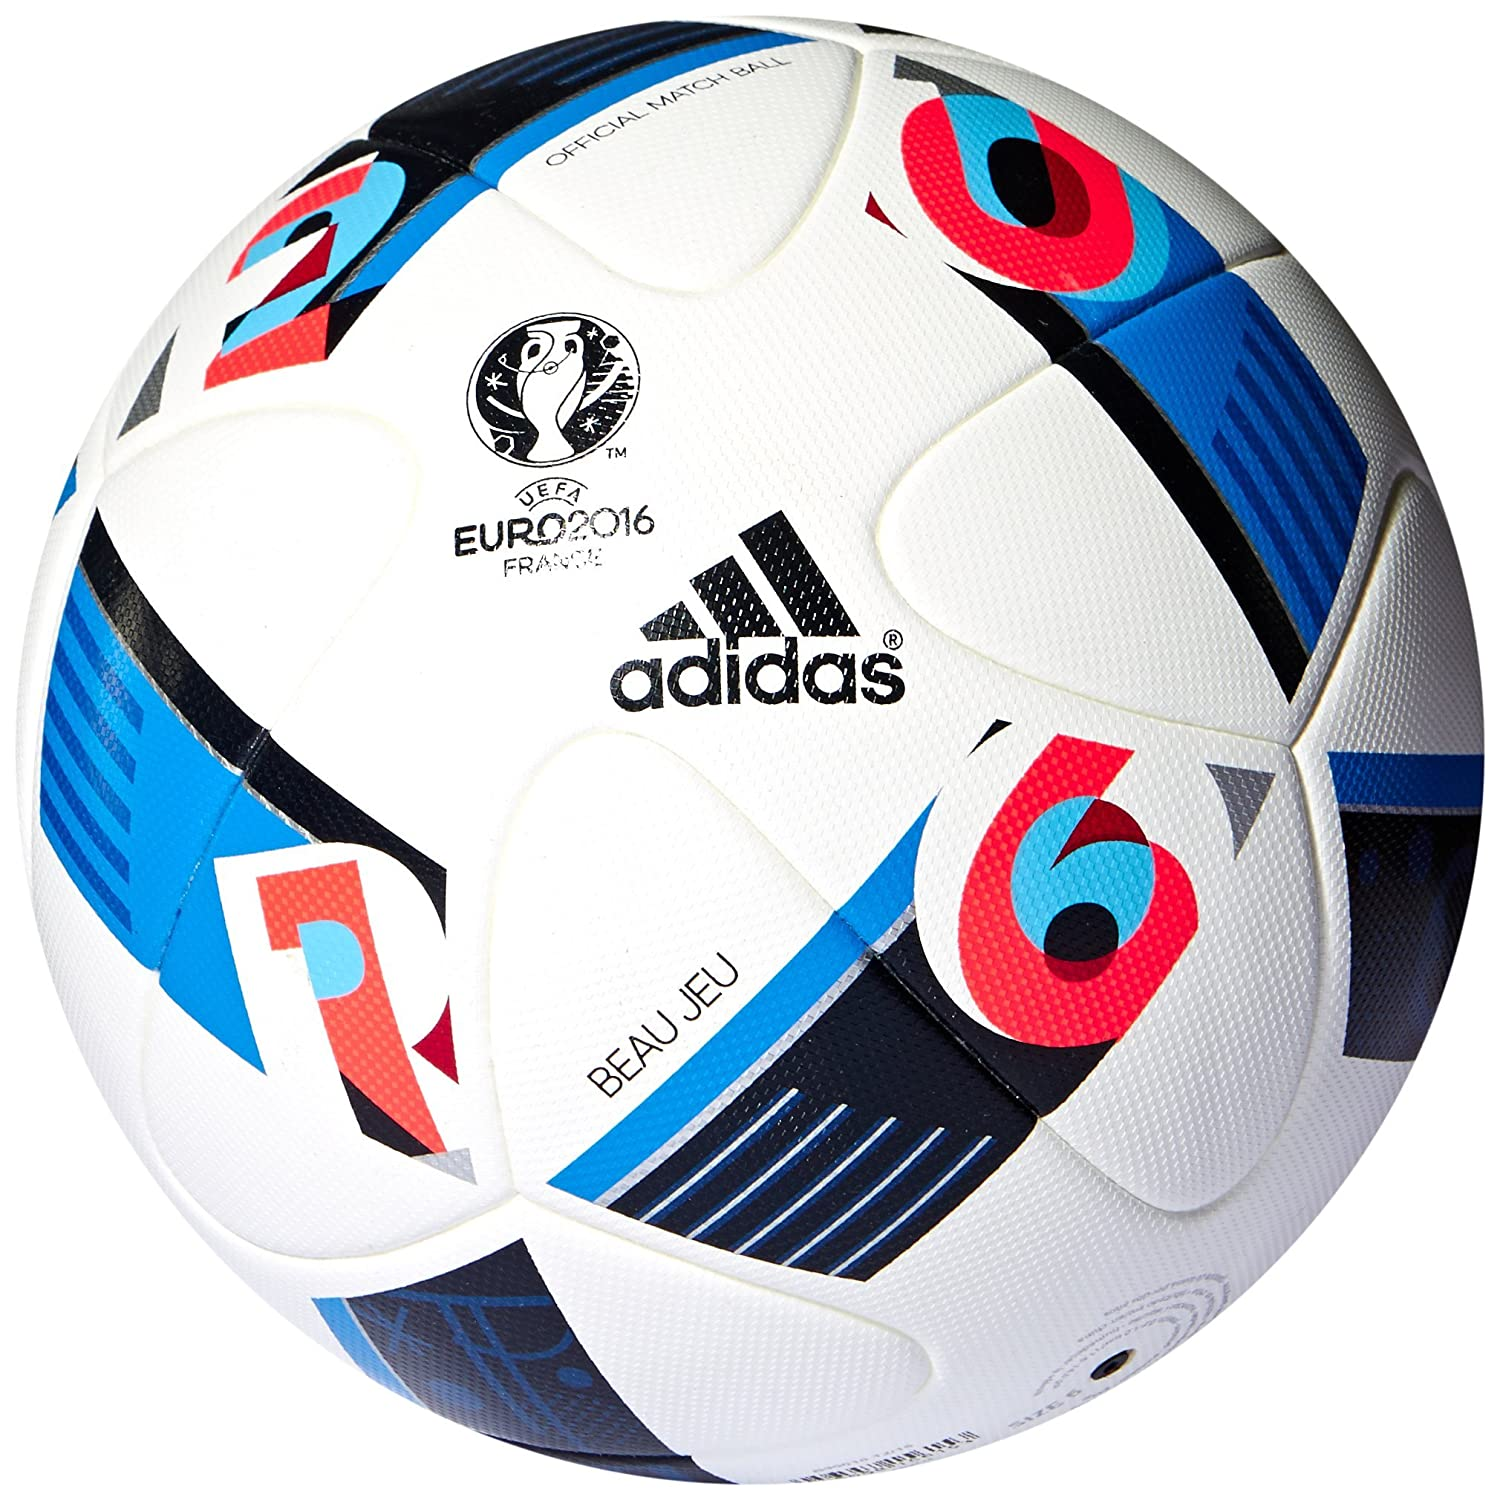 official adidas euro 2016 match ball 05 amazoncouk sports outdoors